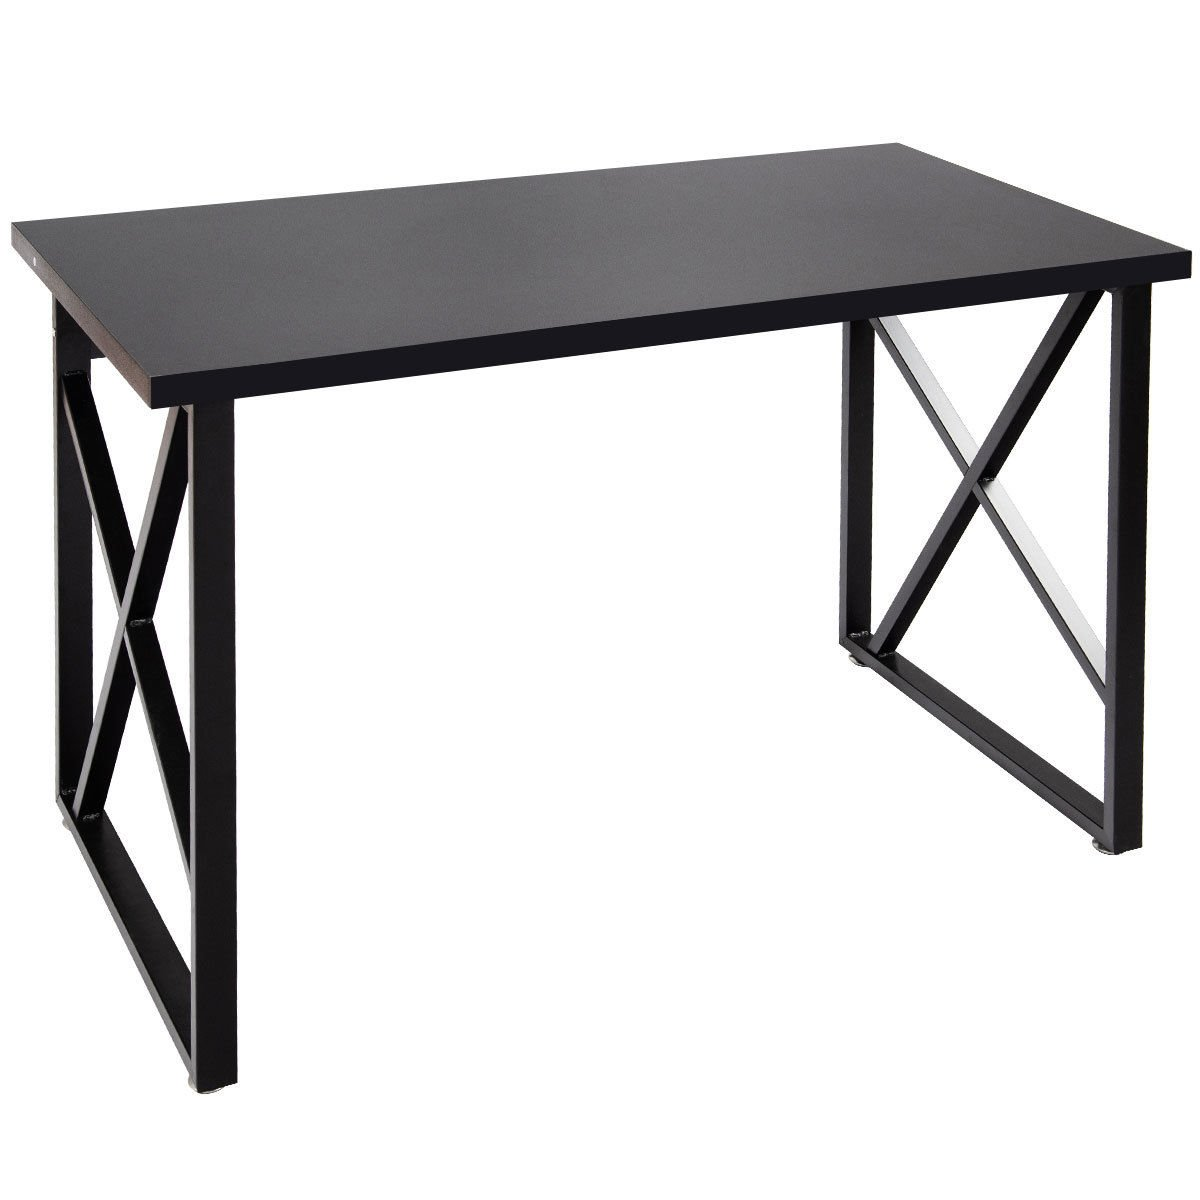 47.5'' Black MDF Writing Computer Desk PC Laptop Table Home Office Study Workstation Computer Desk w/Metal Leg with Ebook